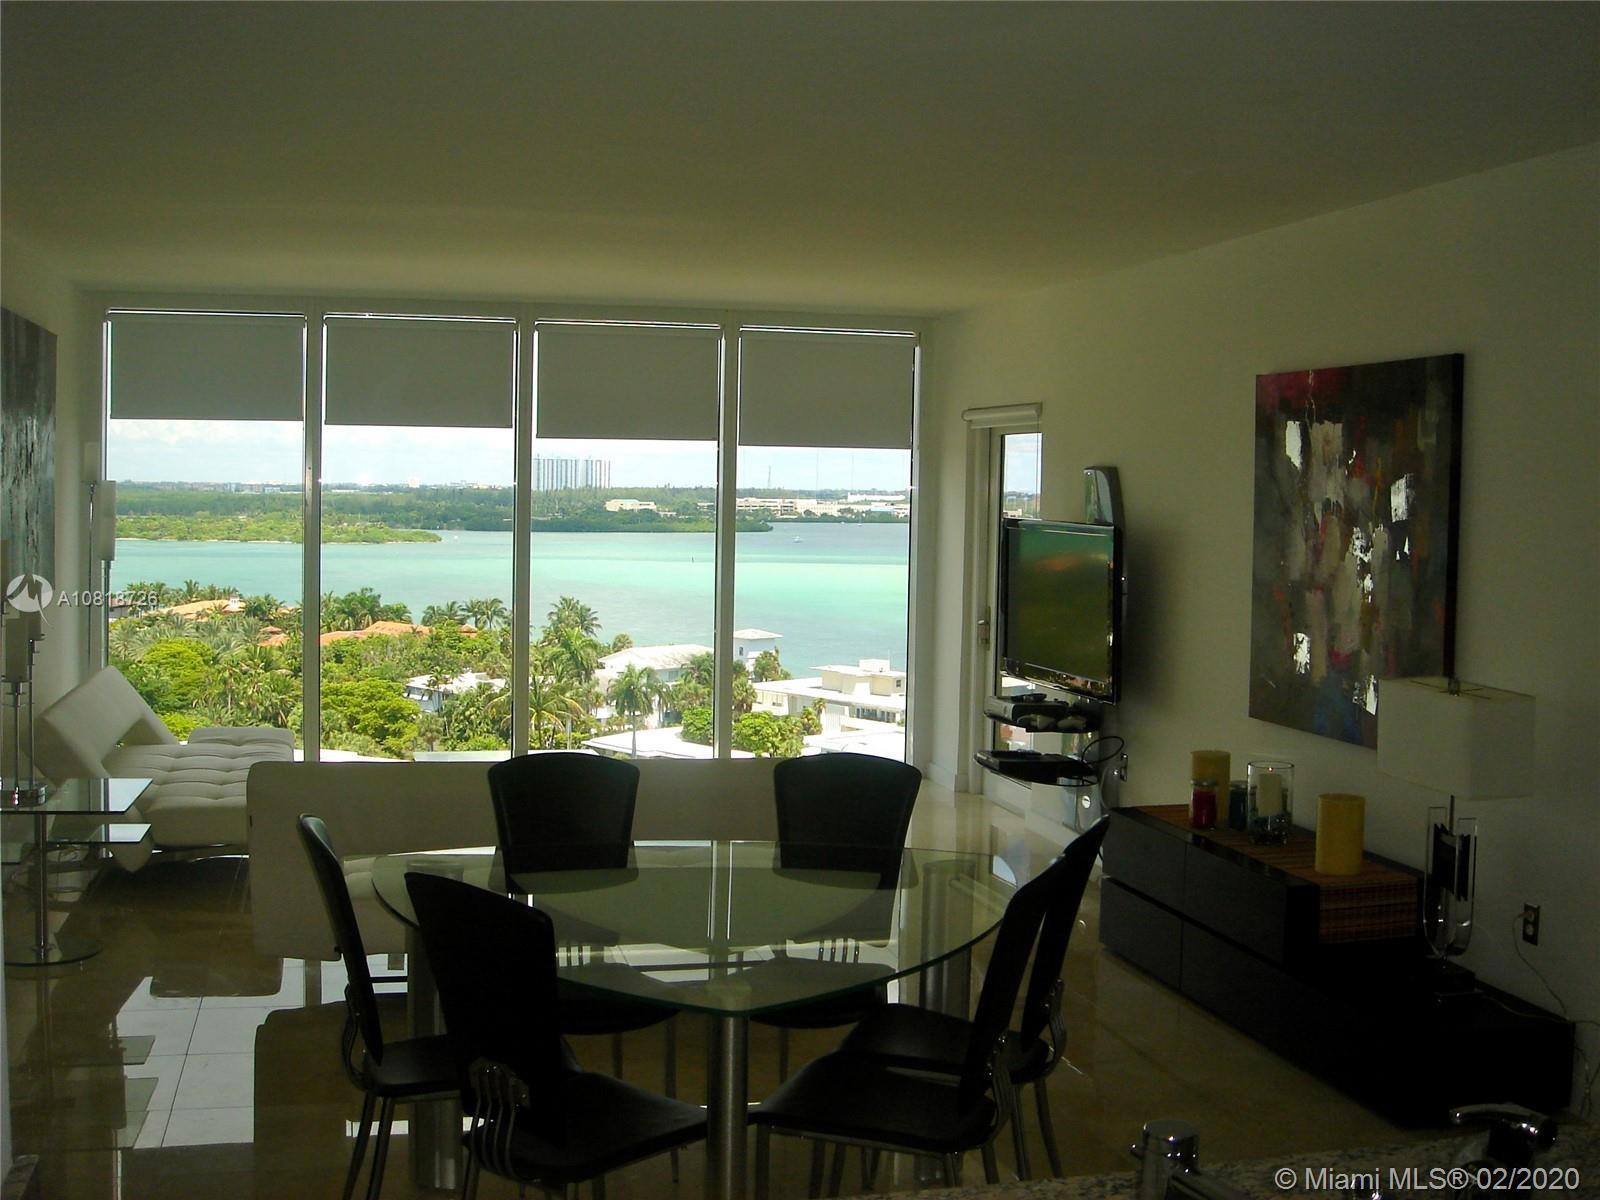 Luxurious, very bright 1 bed/1.5 bath condo located in an oceanfront 5 star luxury building in Bal H